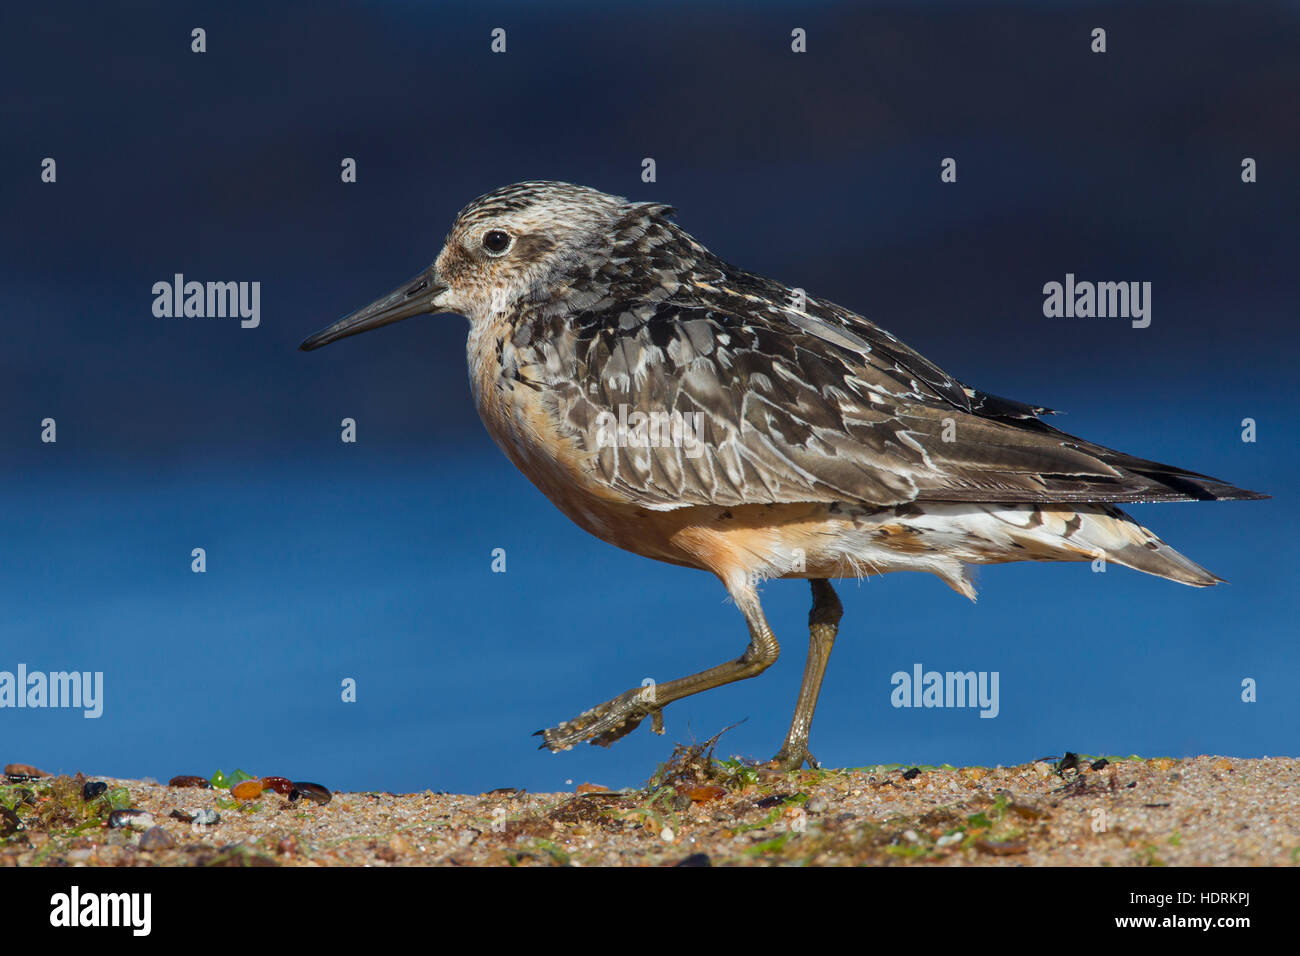 Red knot (Calidris canutus) in late summer plumage foraging along the Baltic Sea coast - Stock Image